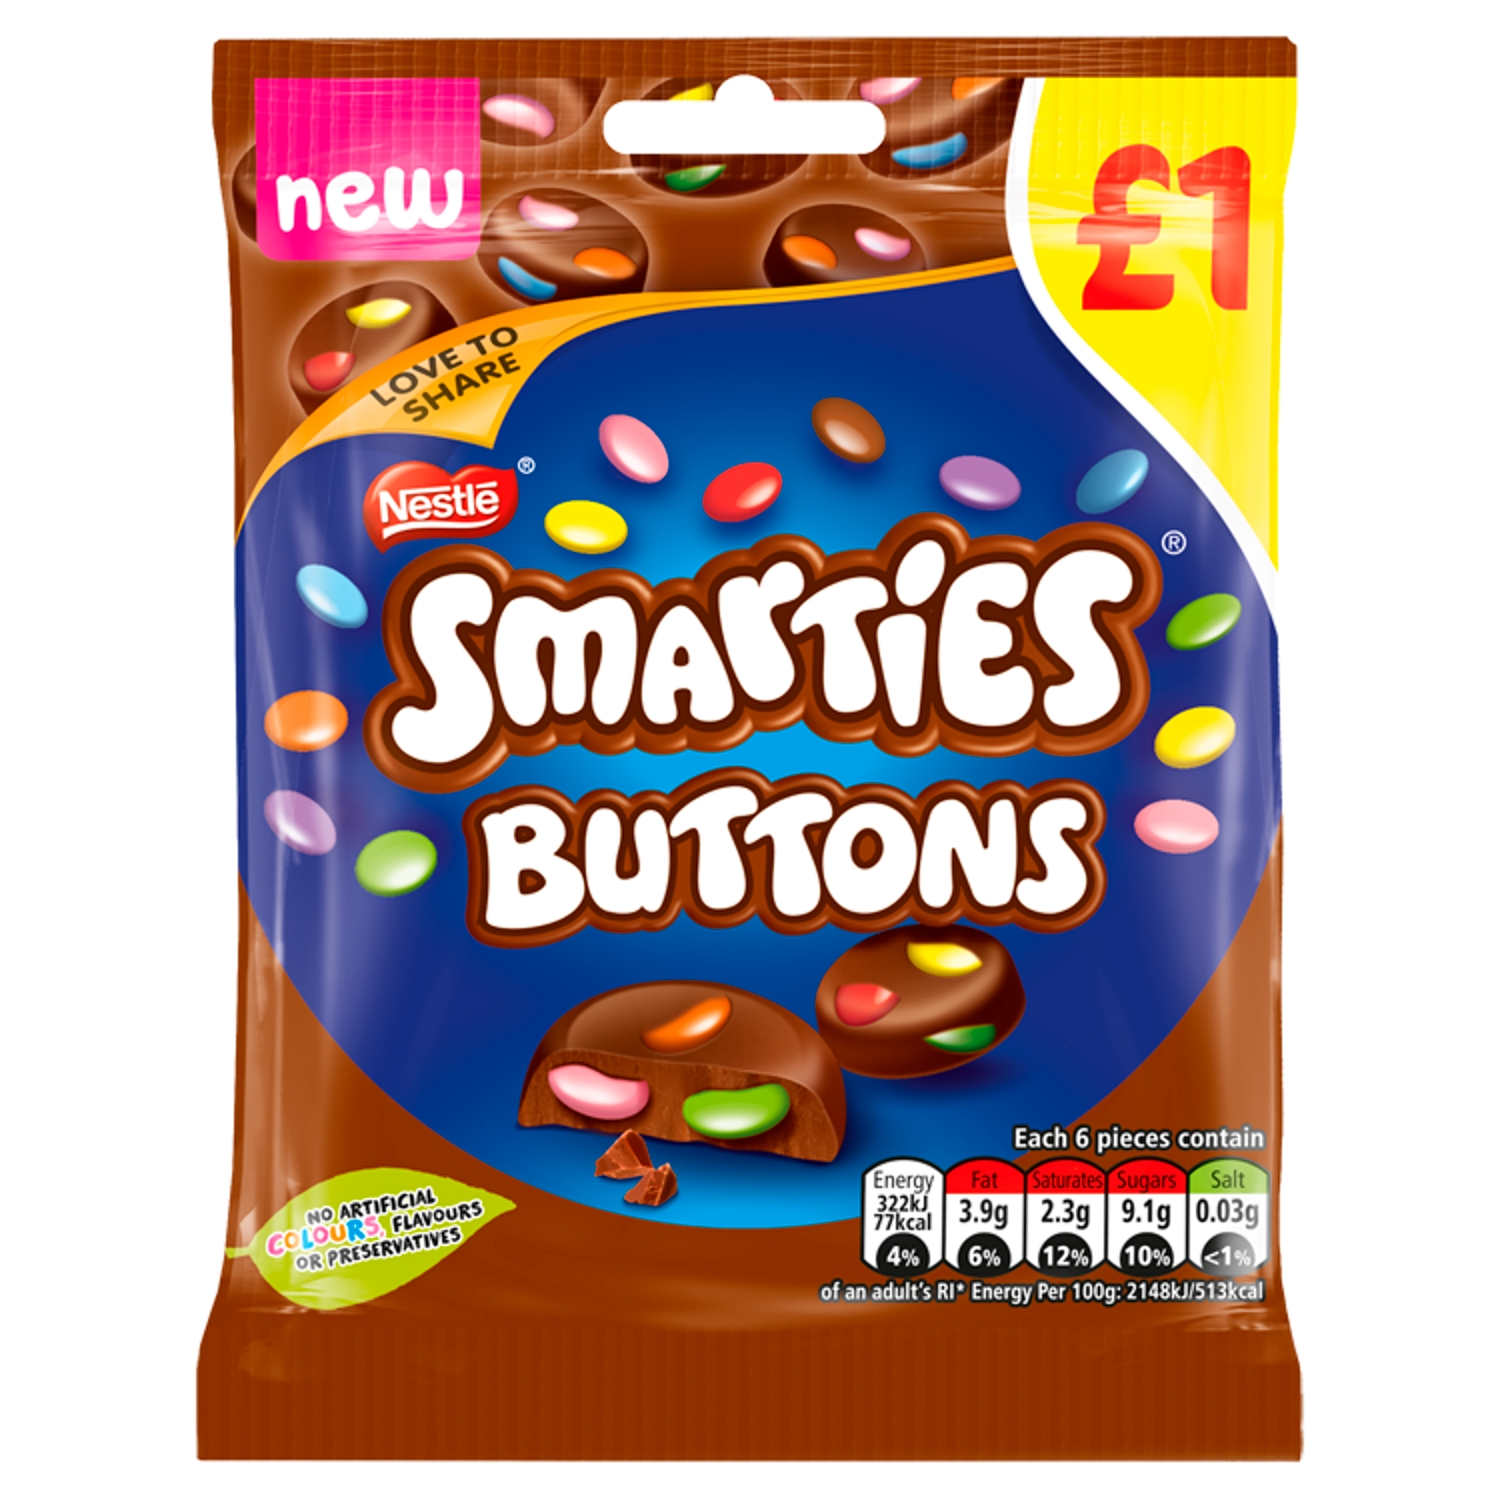 Smarties Buttons Milk Chocolate Sharing Pouch 78g PMP £1